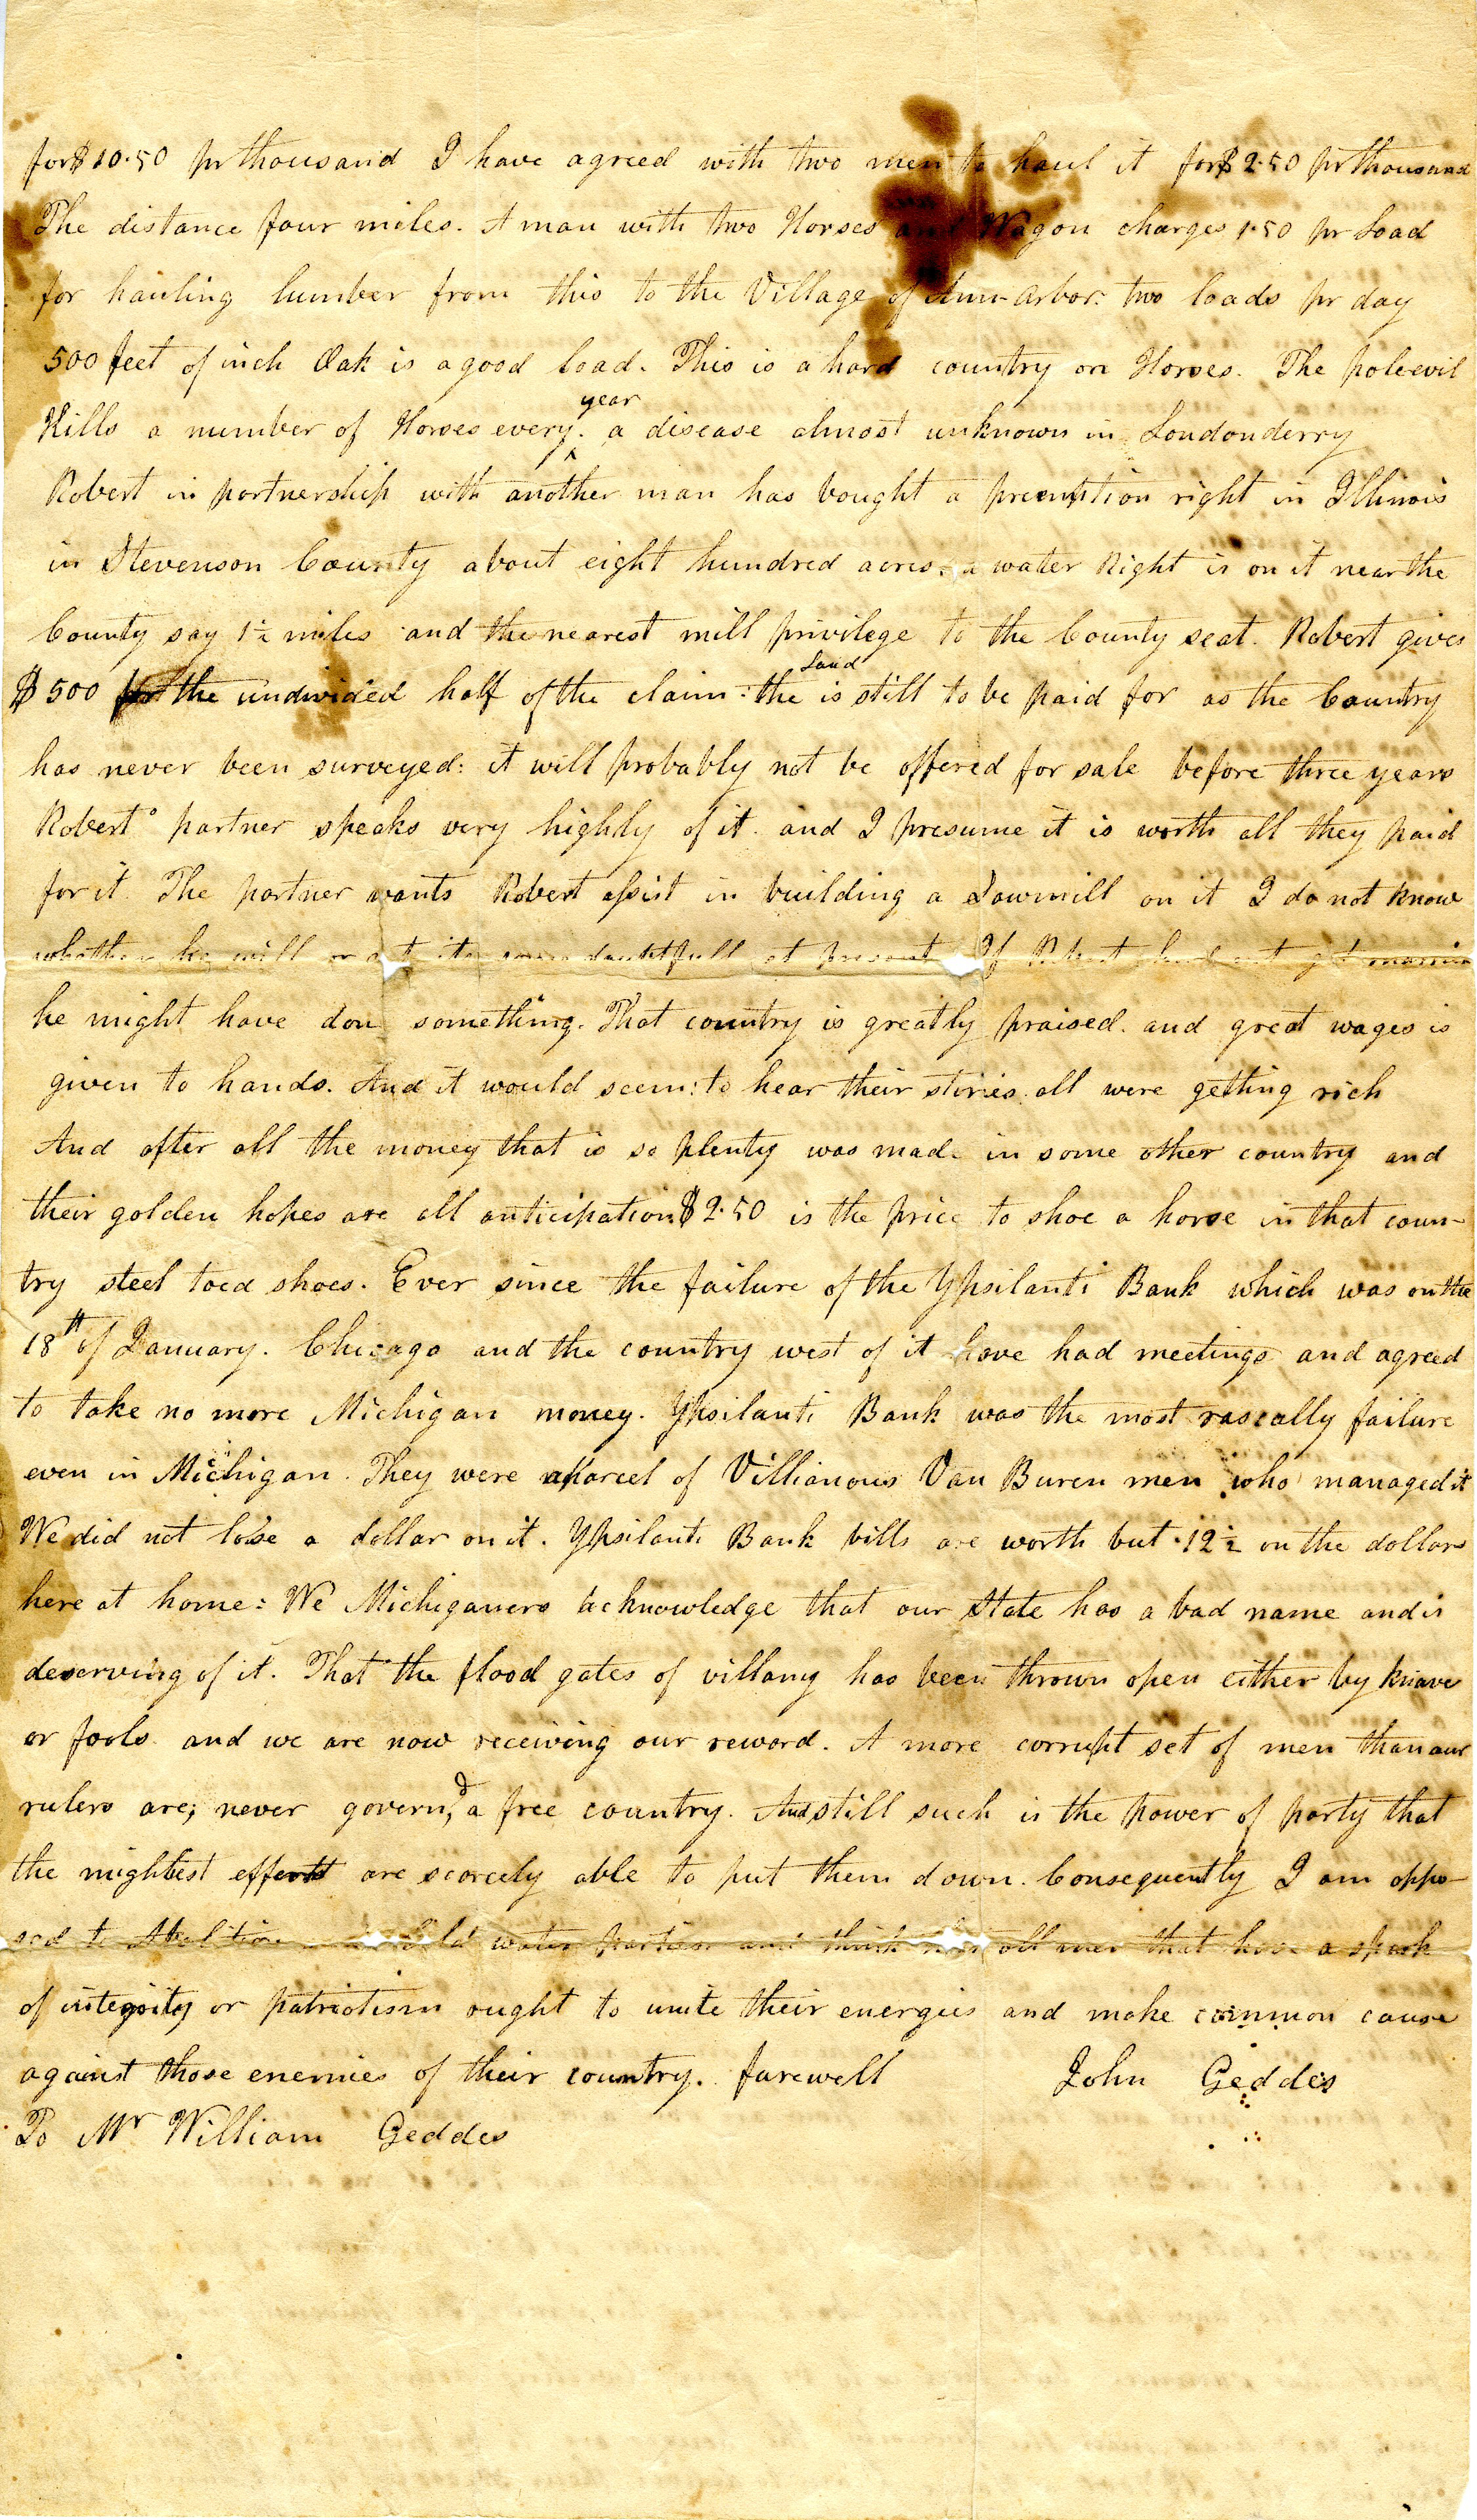 Letter From John Geddes to William Geddes, April 17, 1839 image